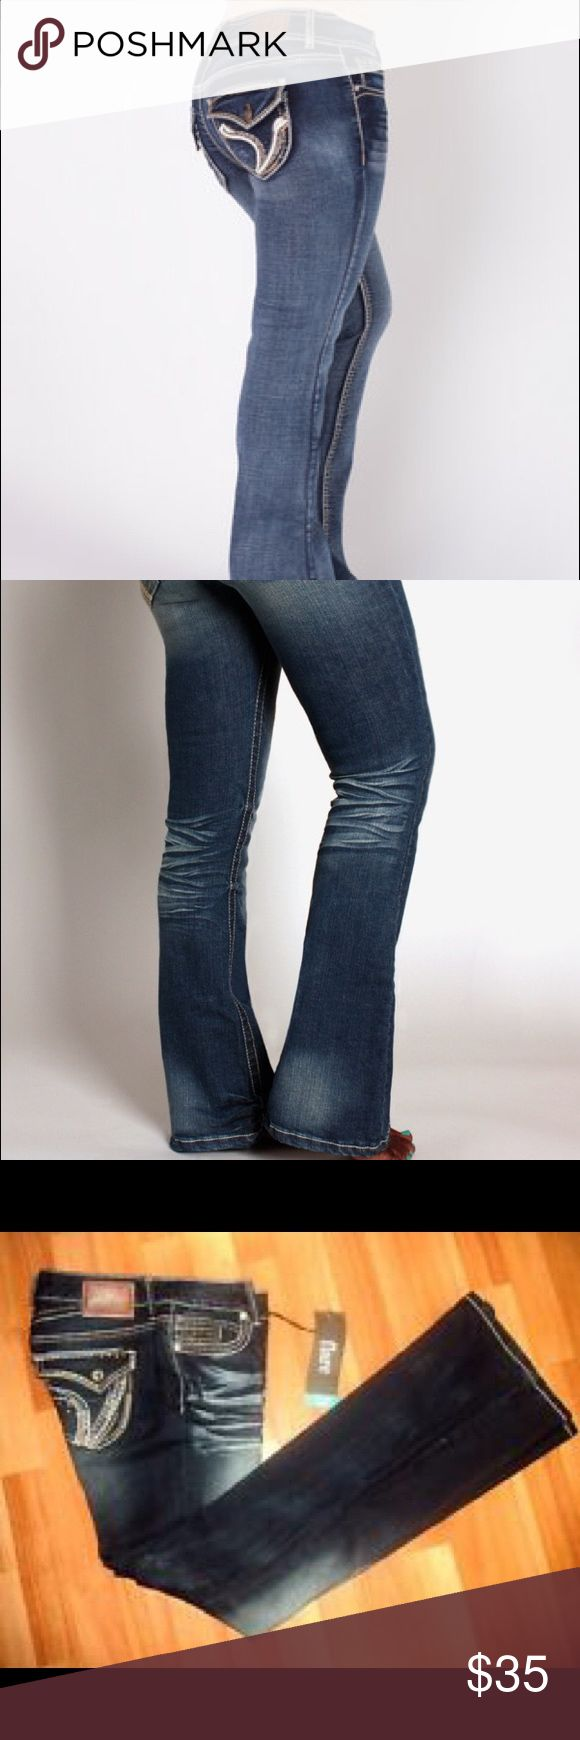 NWT Ariiya 👖 jeans NWT curvy  jeans 👖 no gap in the back and contoured the butt area size 5/6 Jeans Flare & Wide Leg